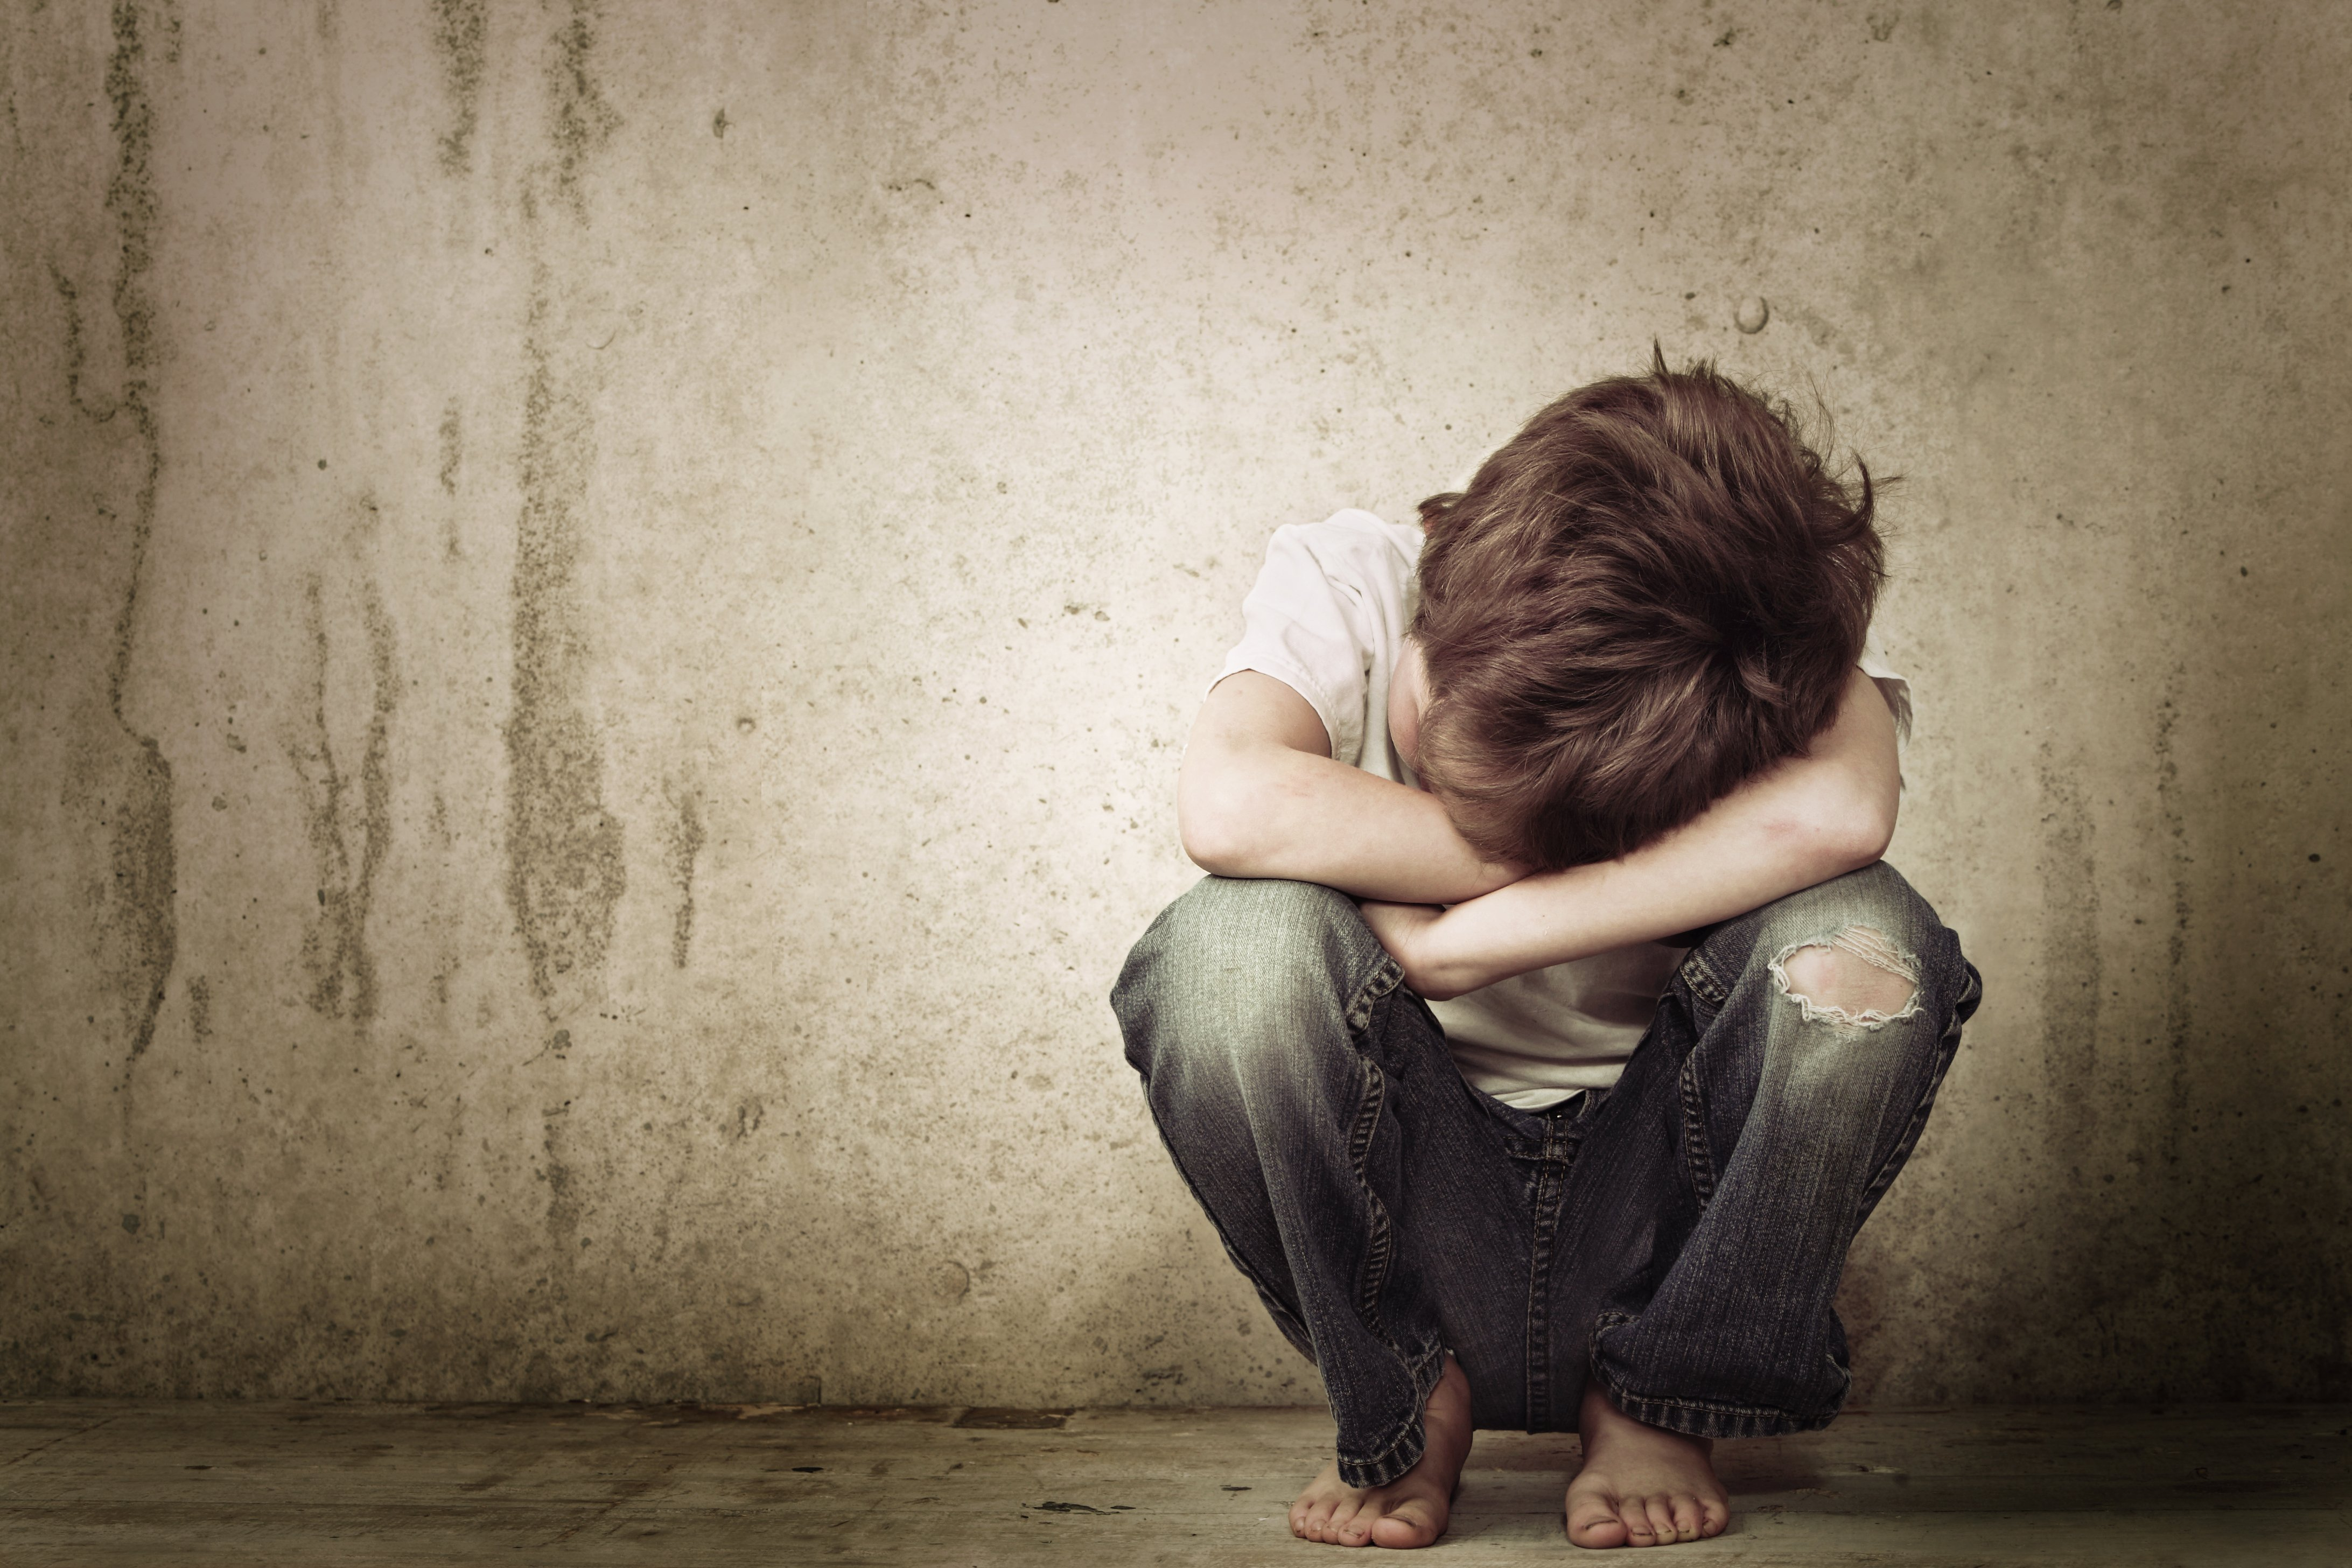 Sad boy crying in the corner. | Source: Shutterstock